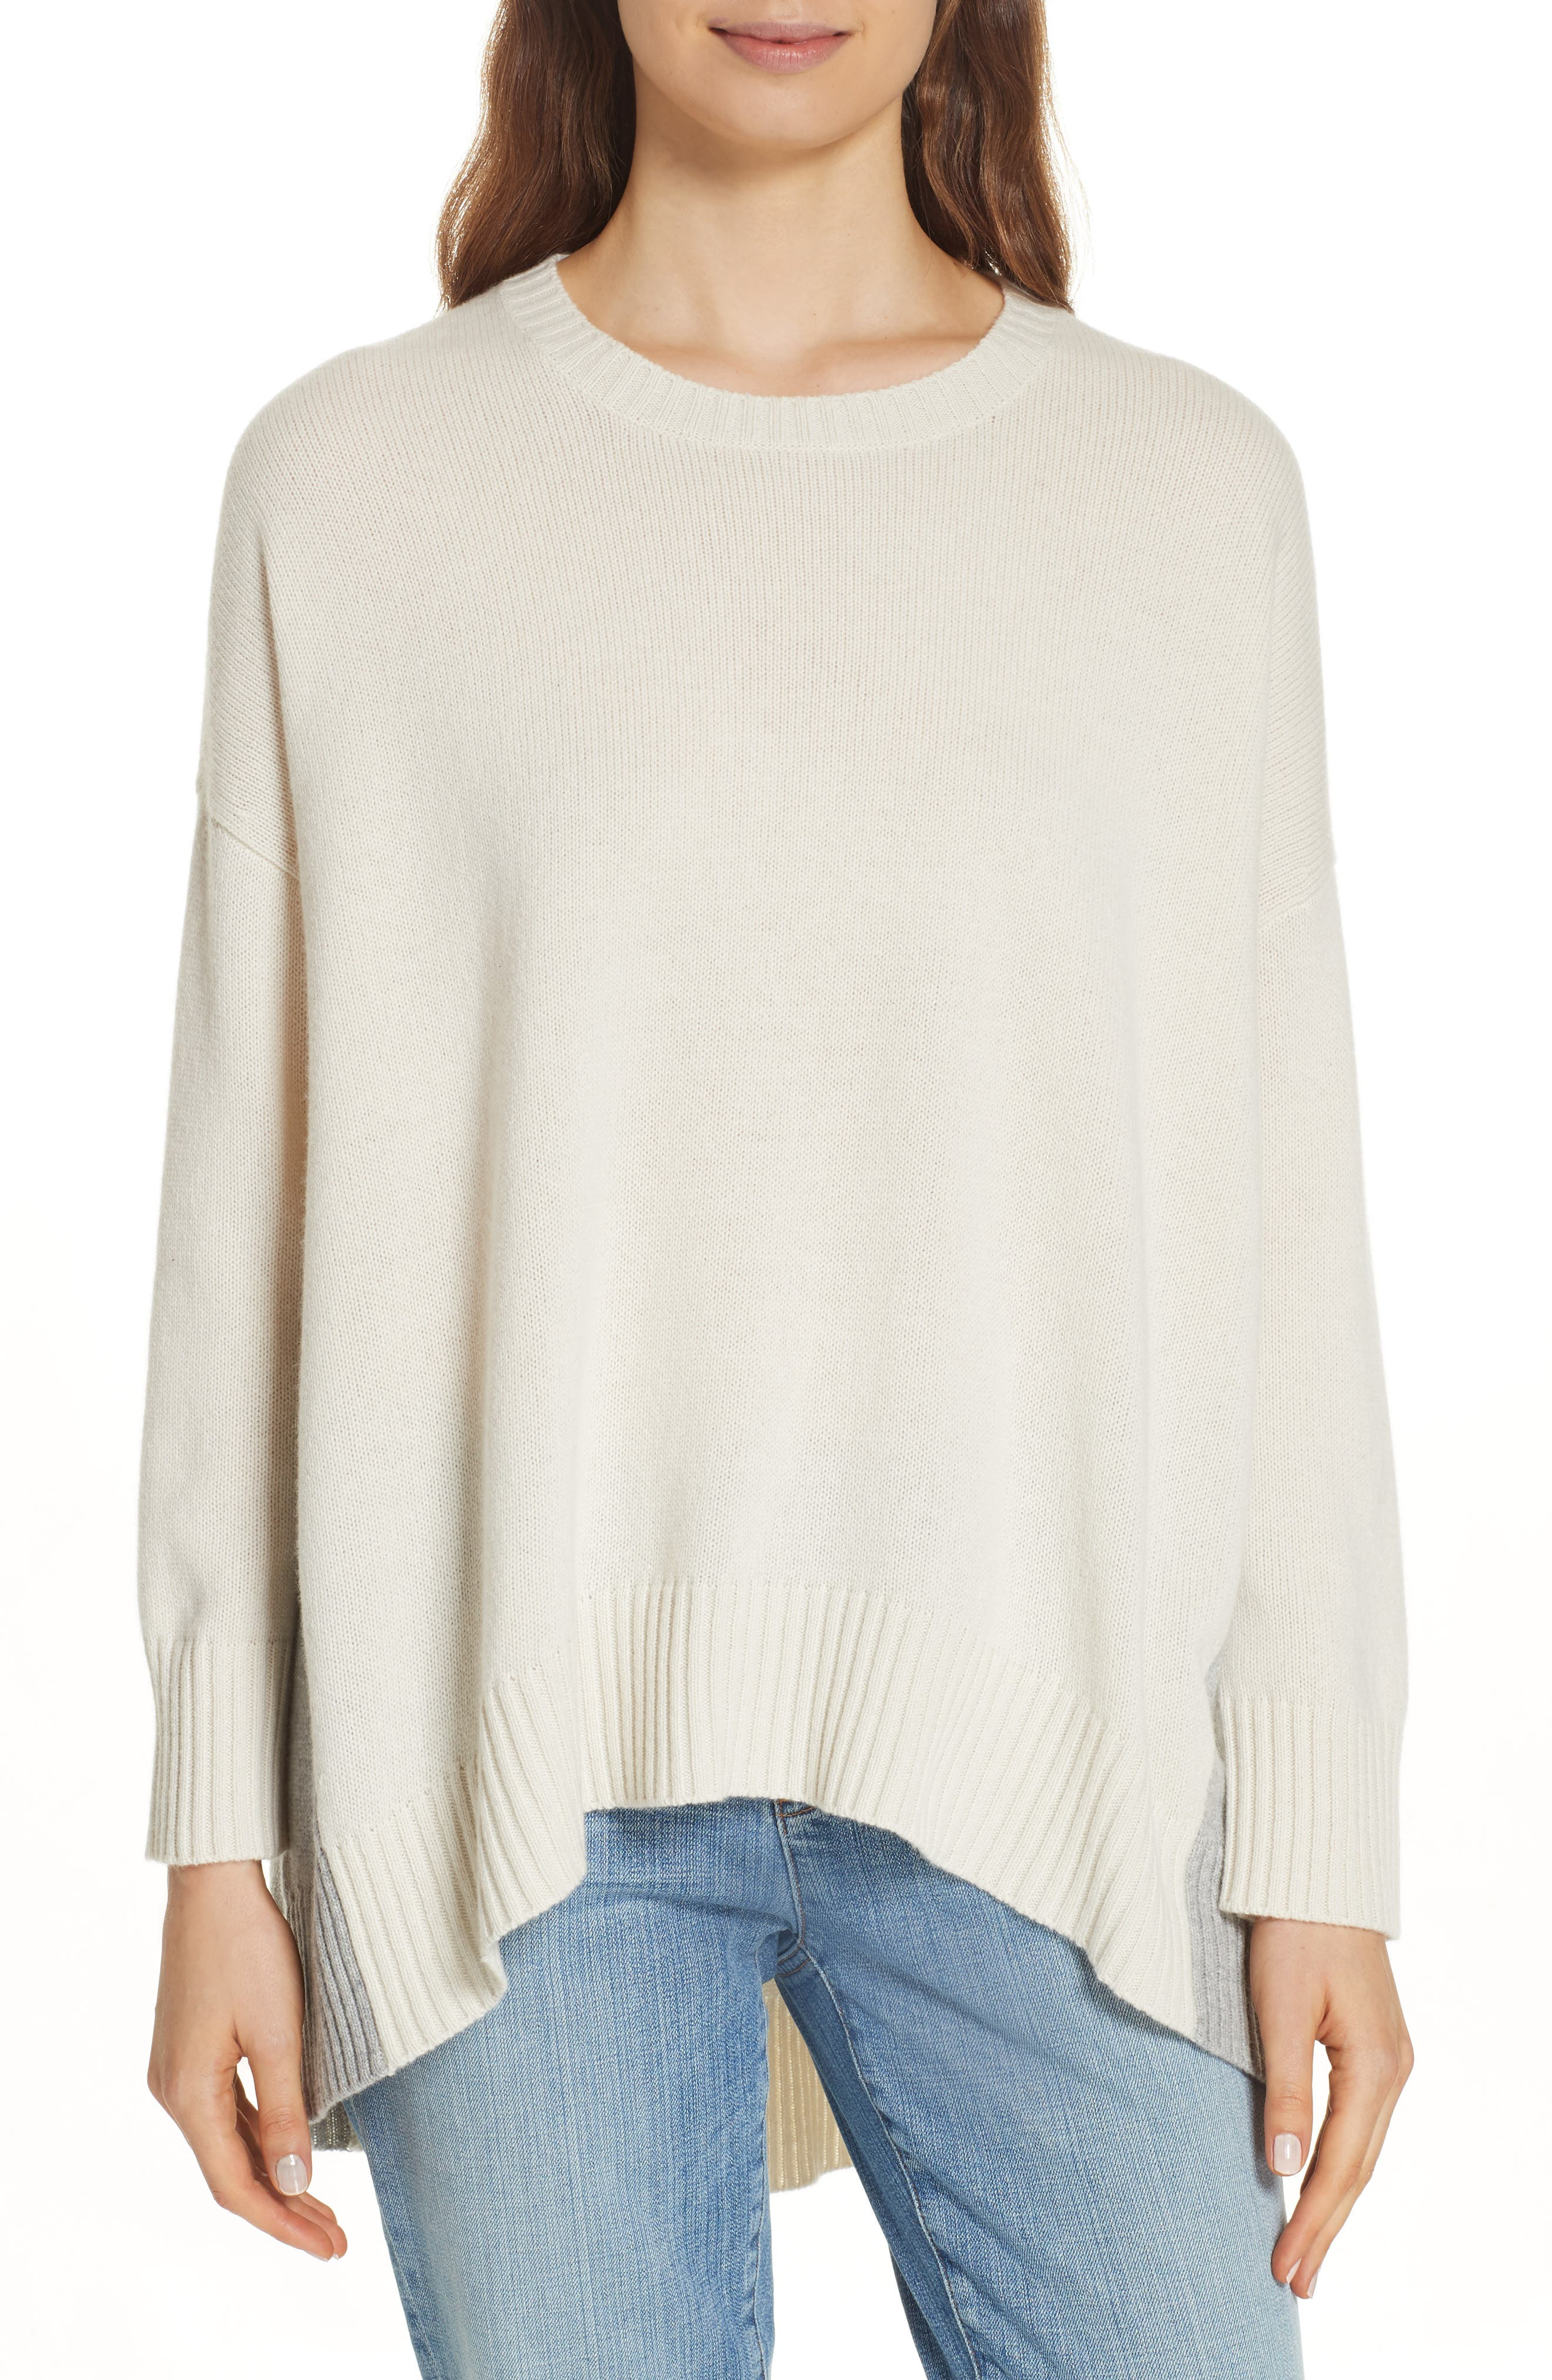 Oversize Cashmere & Wool Sweater,                             Main thumbnail 1, color,                             SOFT WHITE/ DARK PEARL